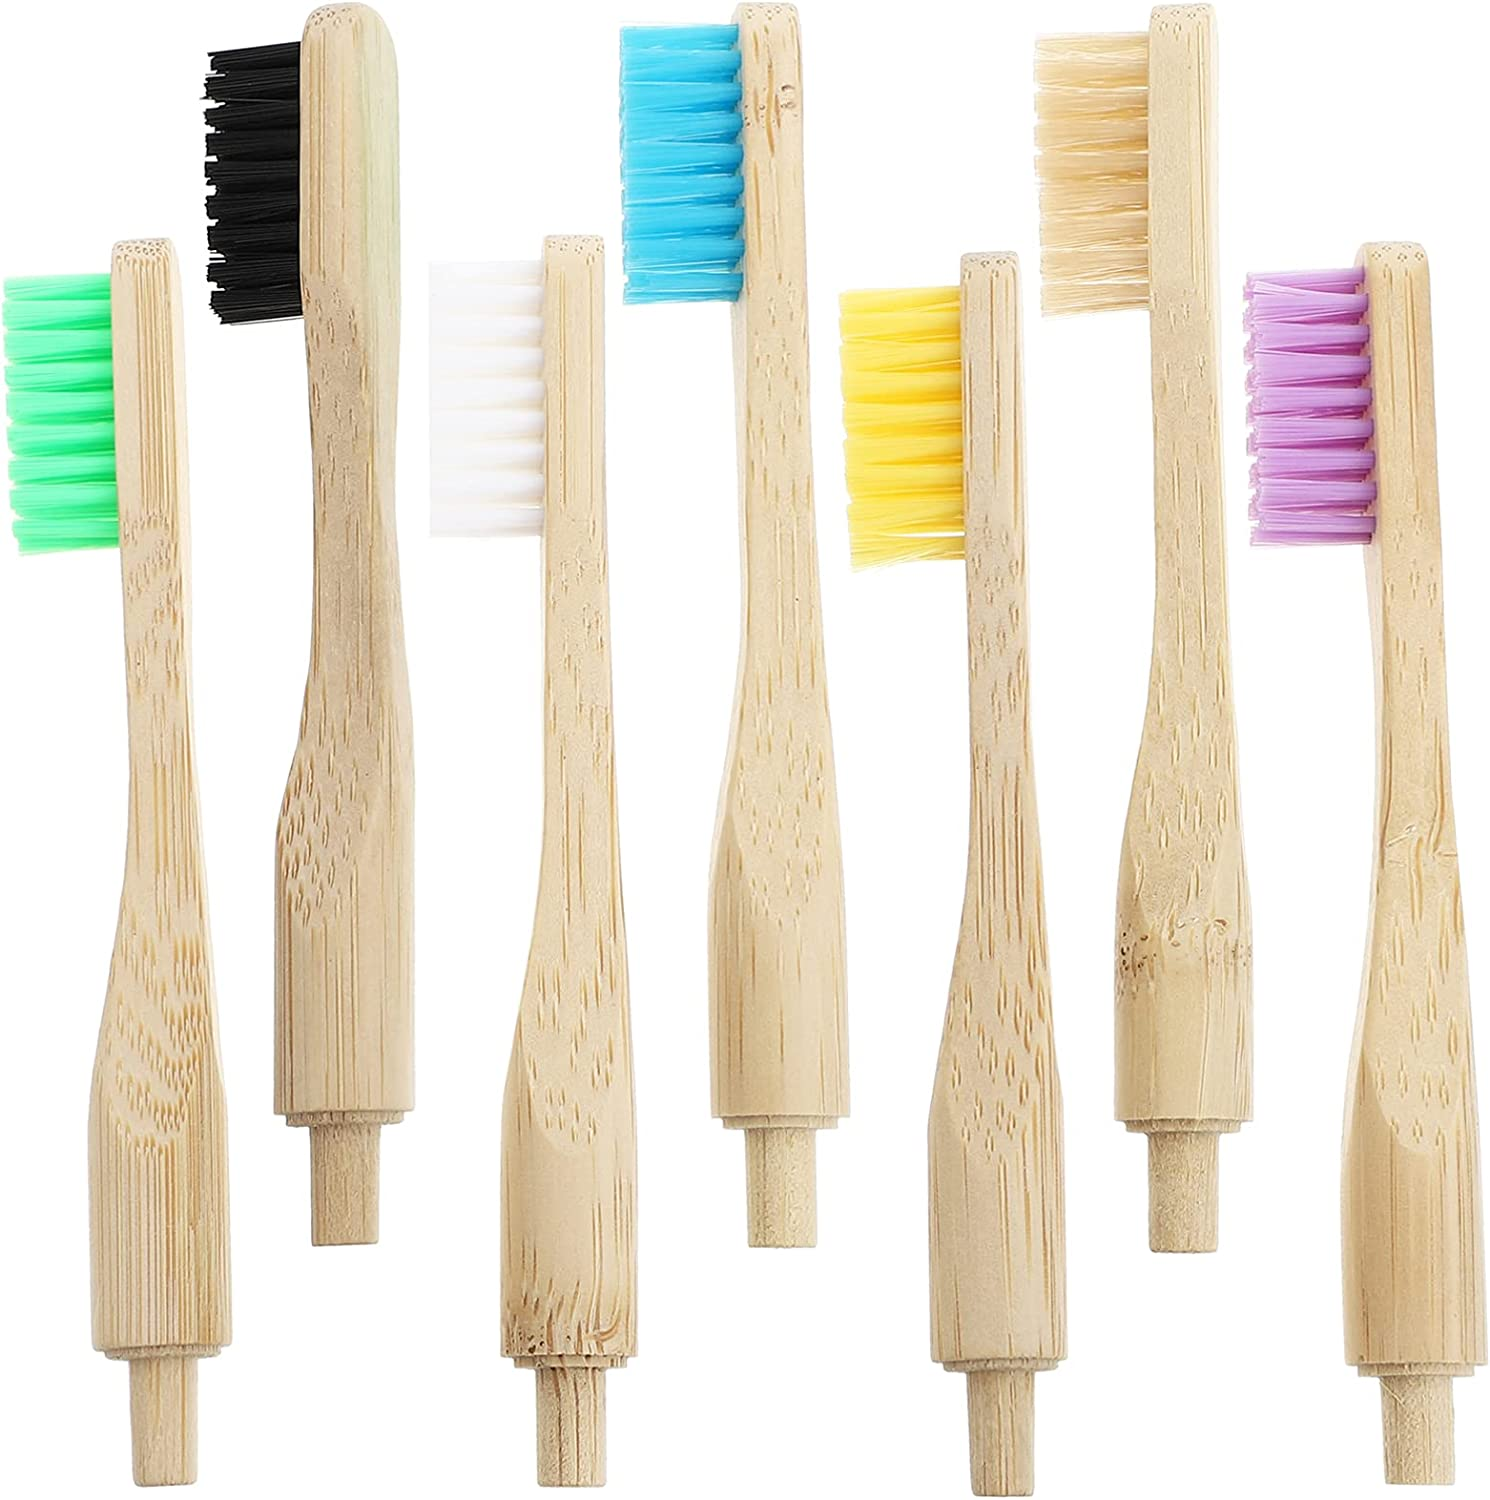 Healifty 7pcs Bamboo Toothbrushes Natural Organic Biodegradable Sales of SALE Miami Mall items from new works